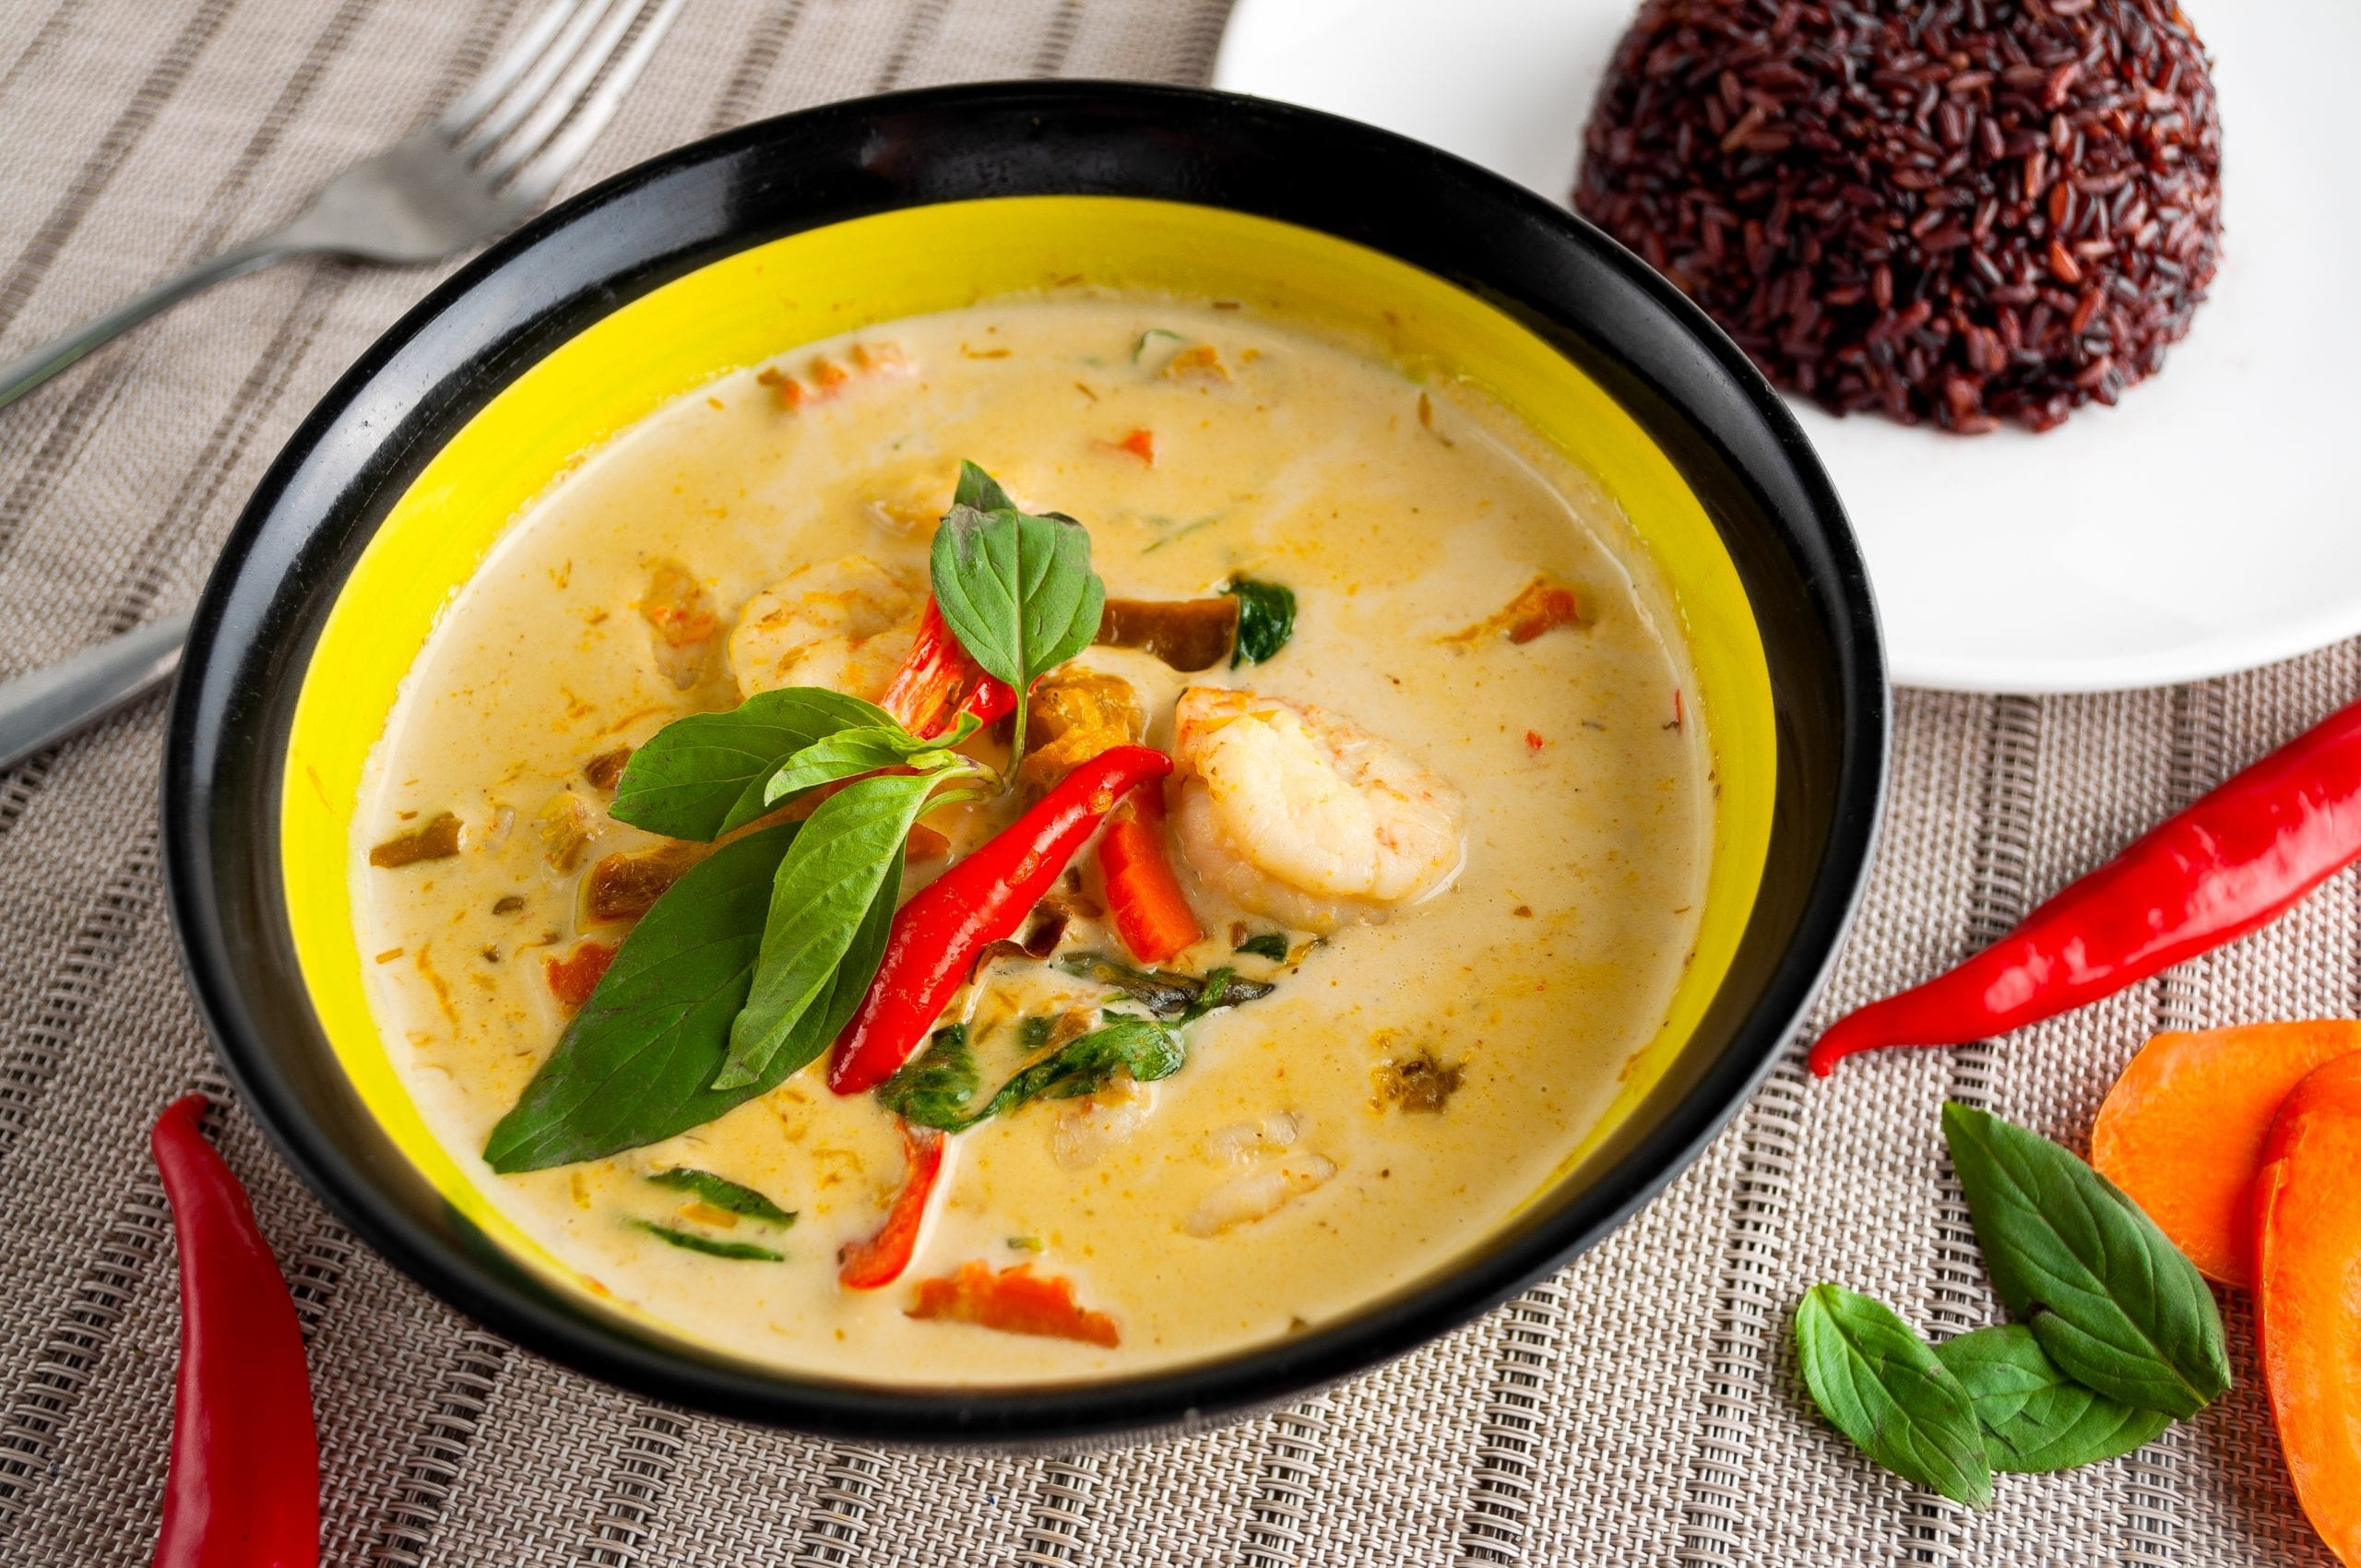 Green Curry Soup with Shrimp